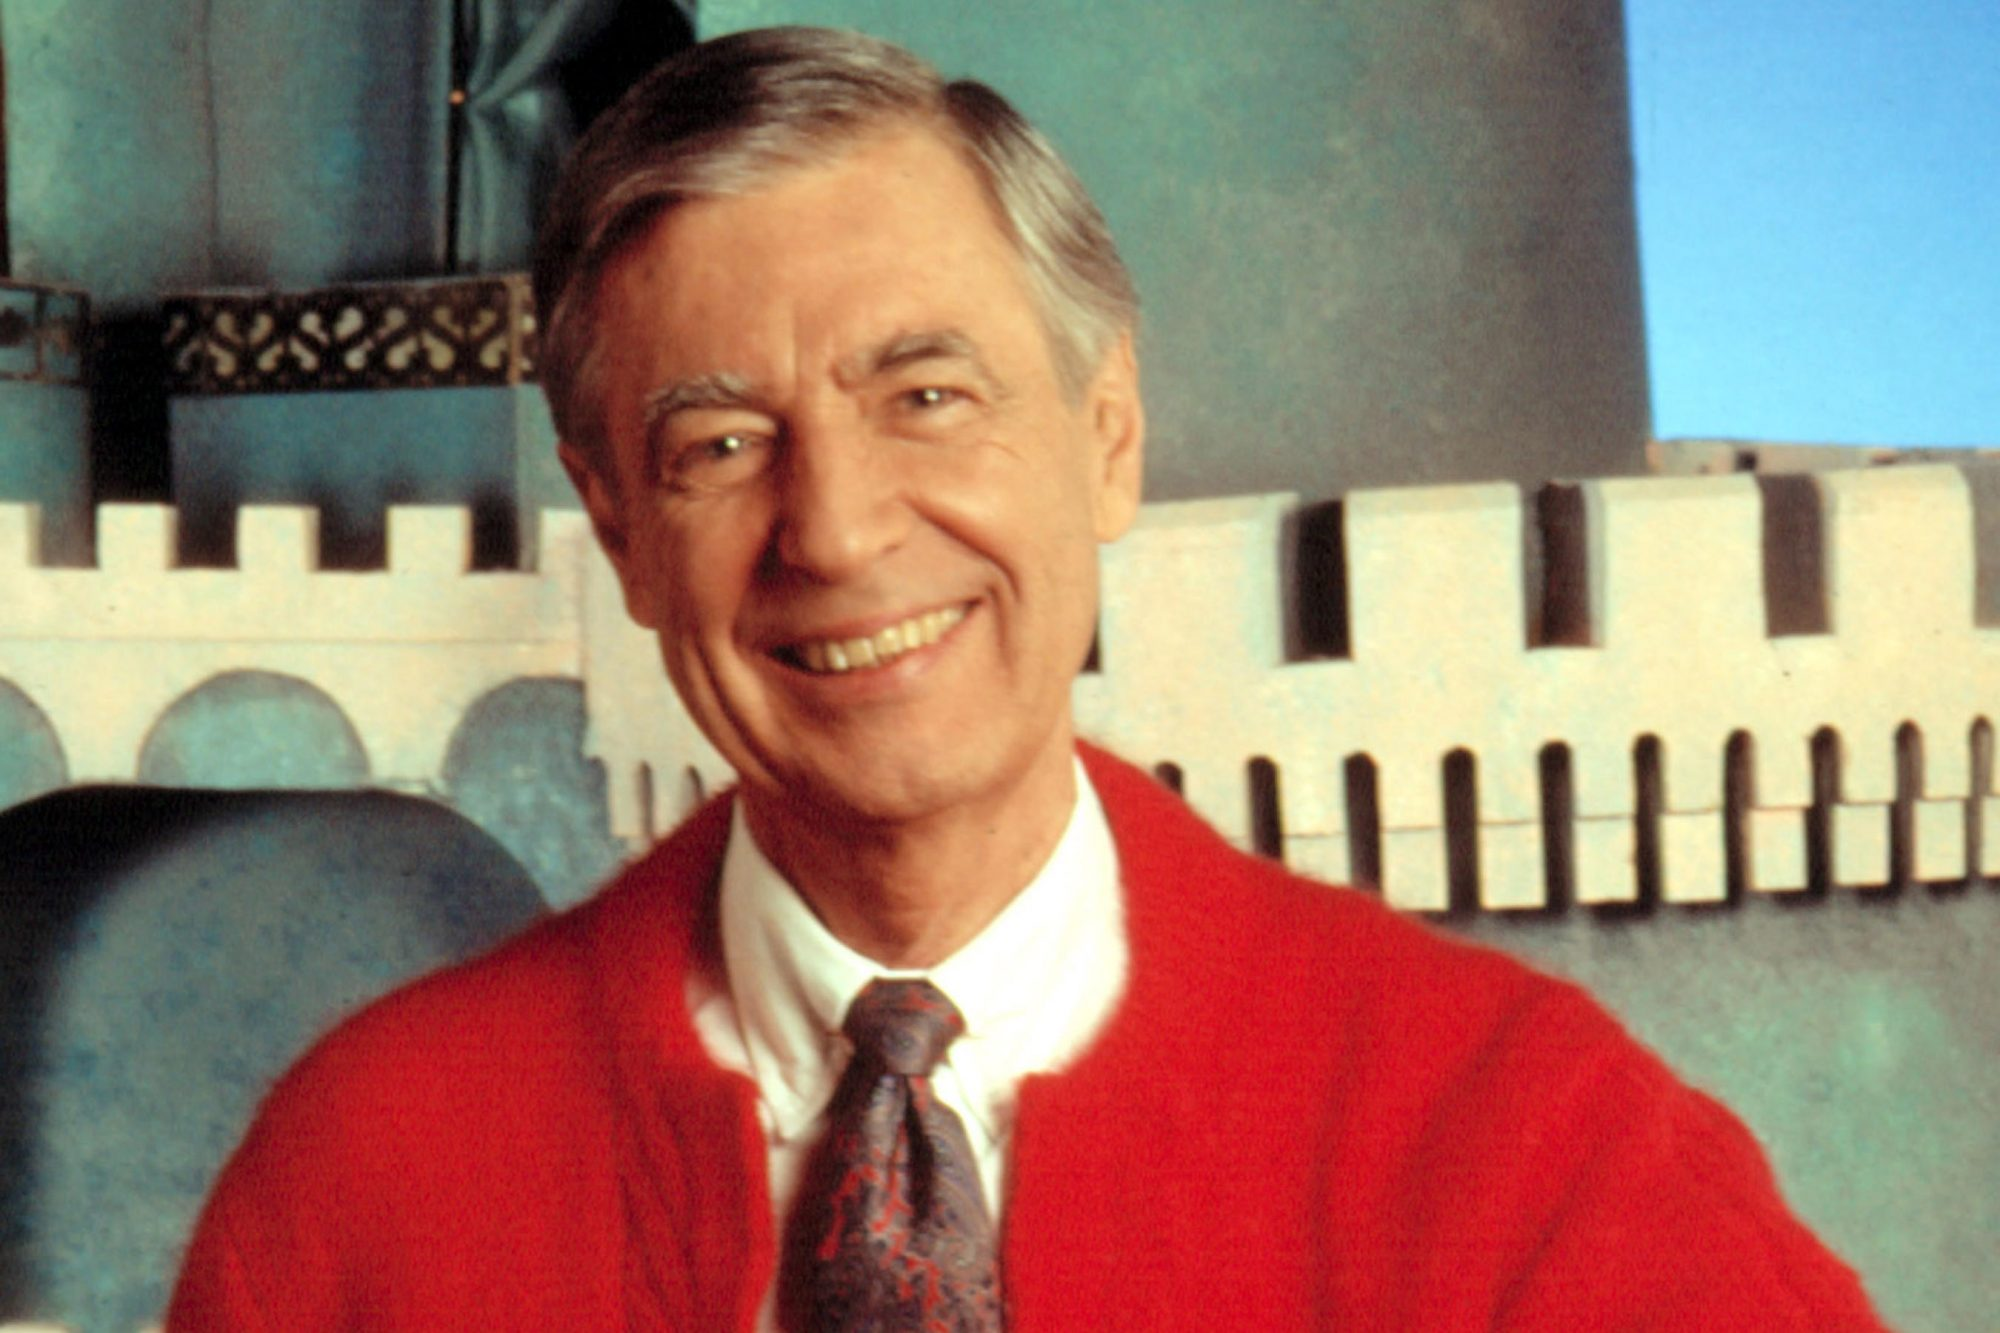 Mister Rogers Addressed Gun Violence With Parents And Kids In 1960s Ew Com